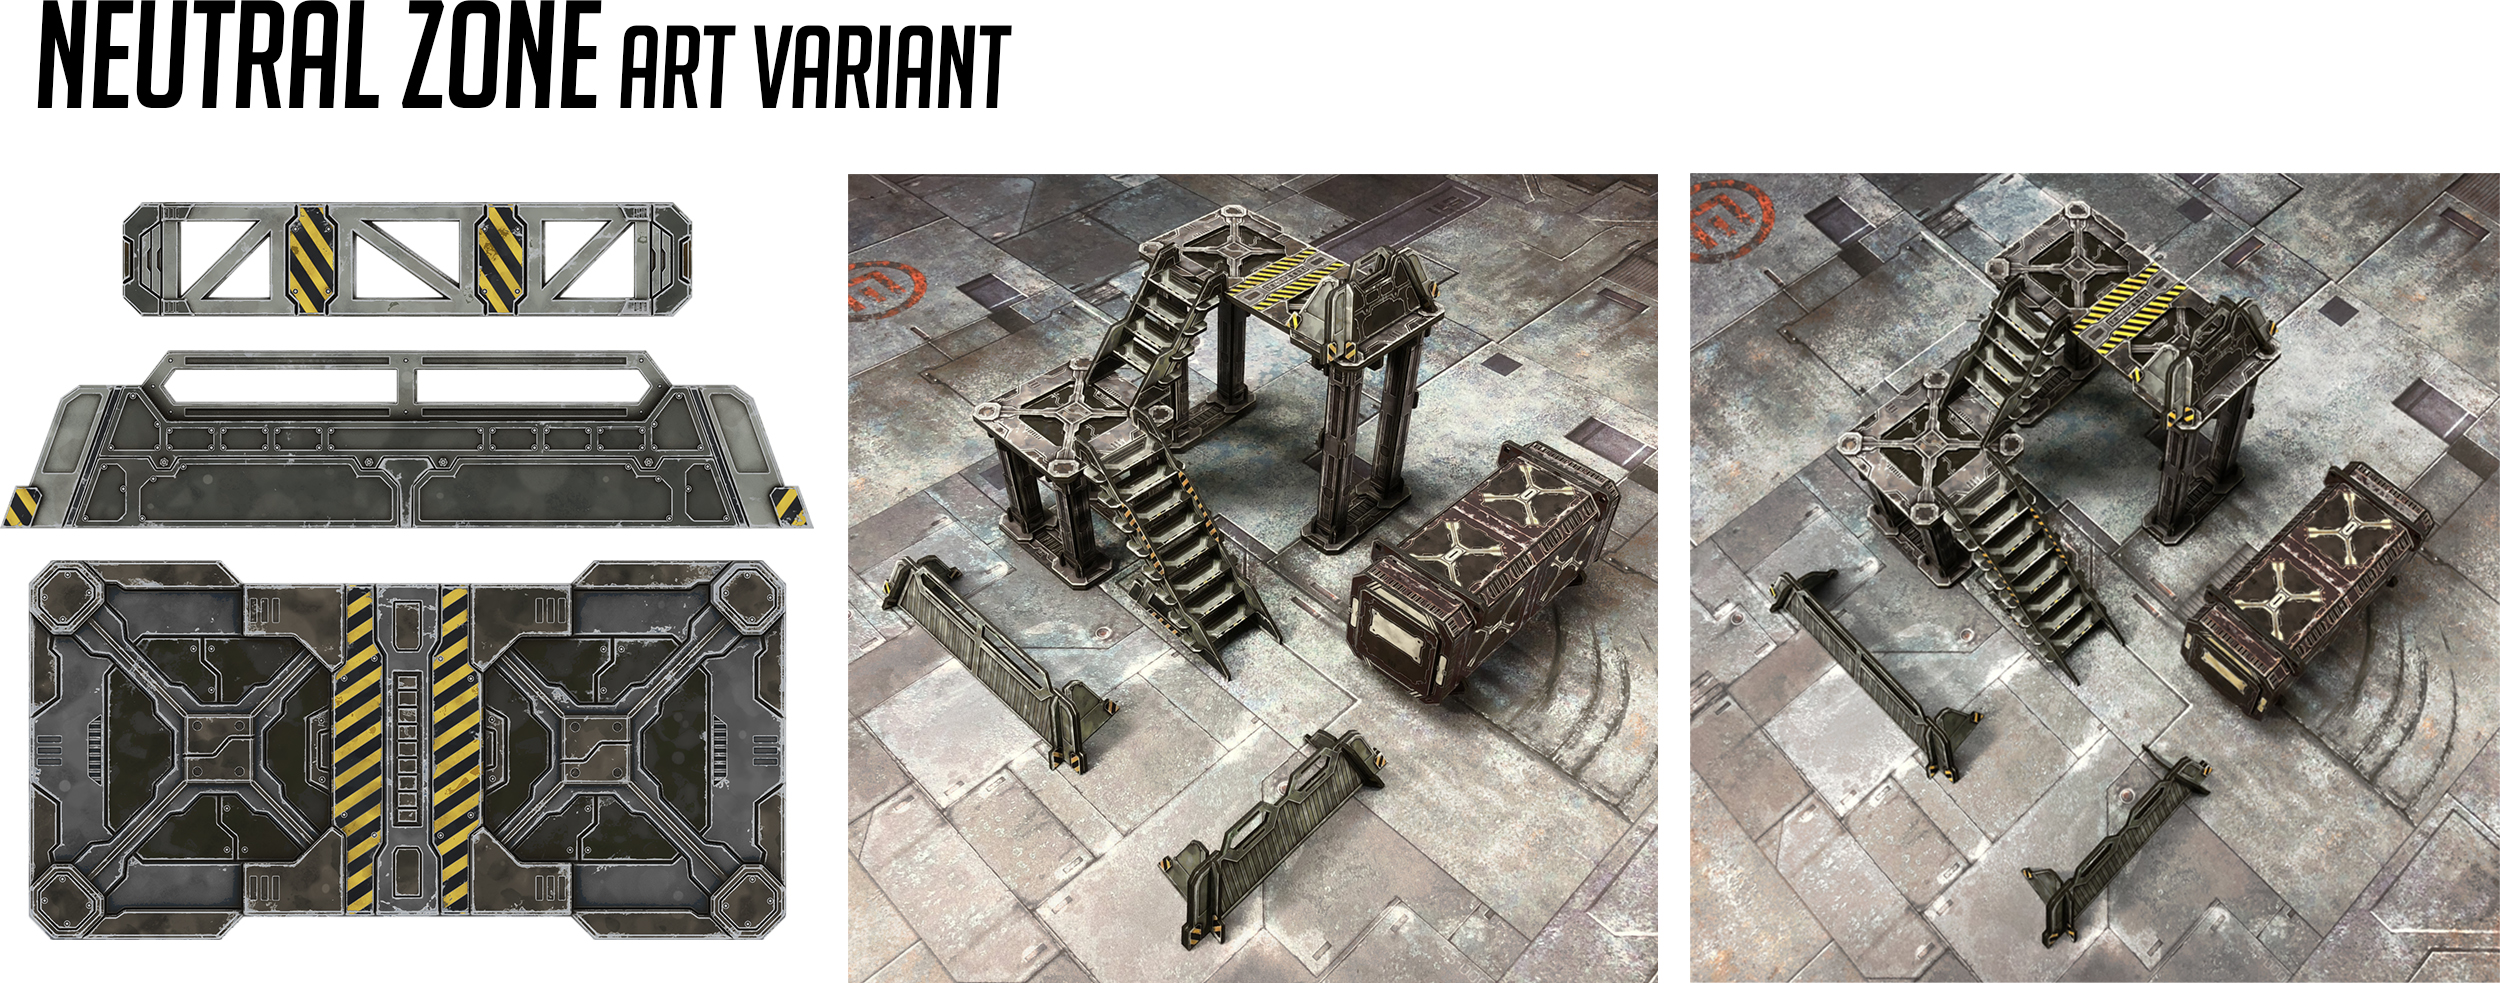 Art Zone Calendar : Tinkerturf full color wargaming terrain by tinkerhouse